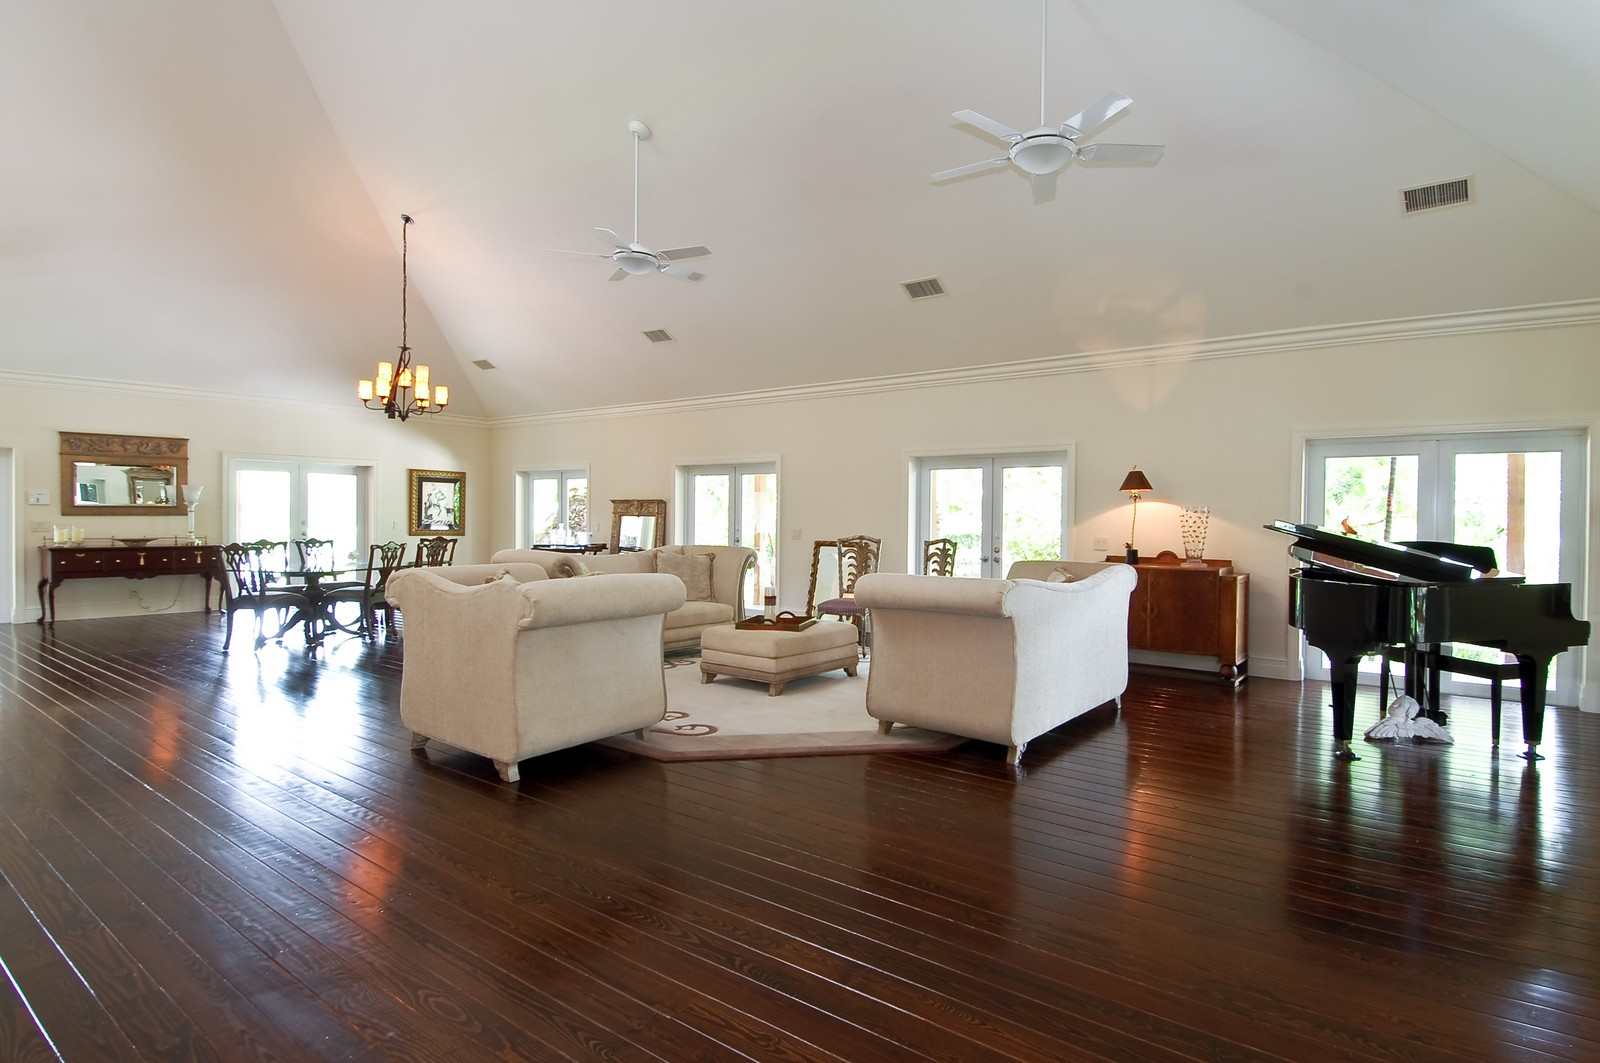 Real Estate Photography - 12800 SW 33RD DRIVE, DAVIE, FL, 33330 - Living Room / Dining Room